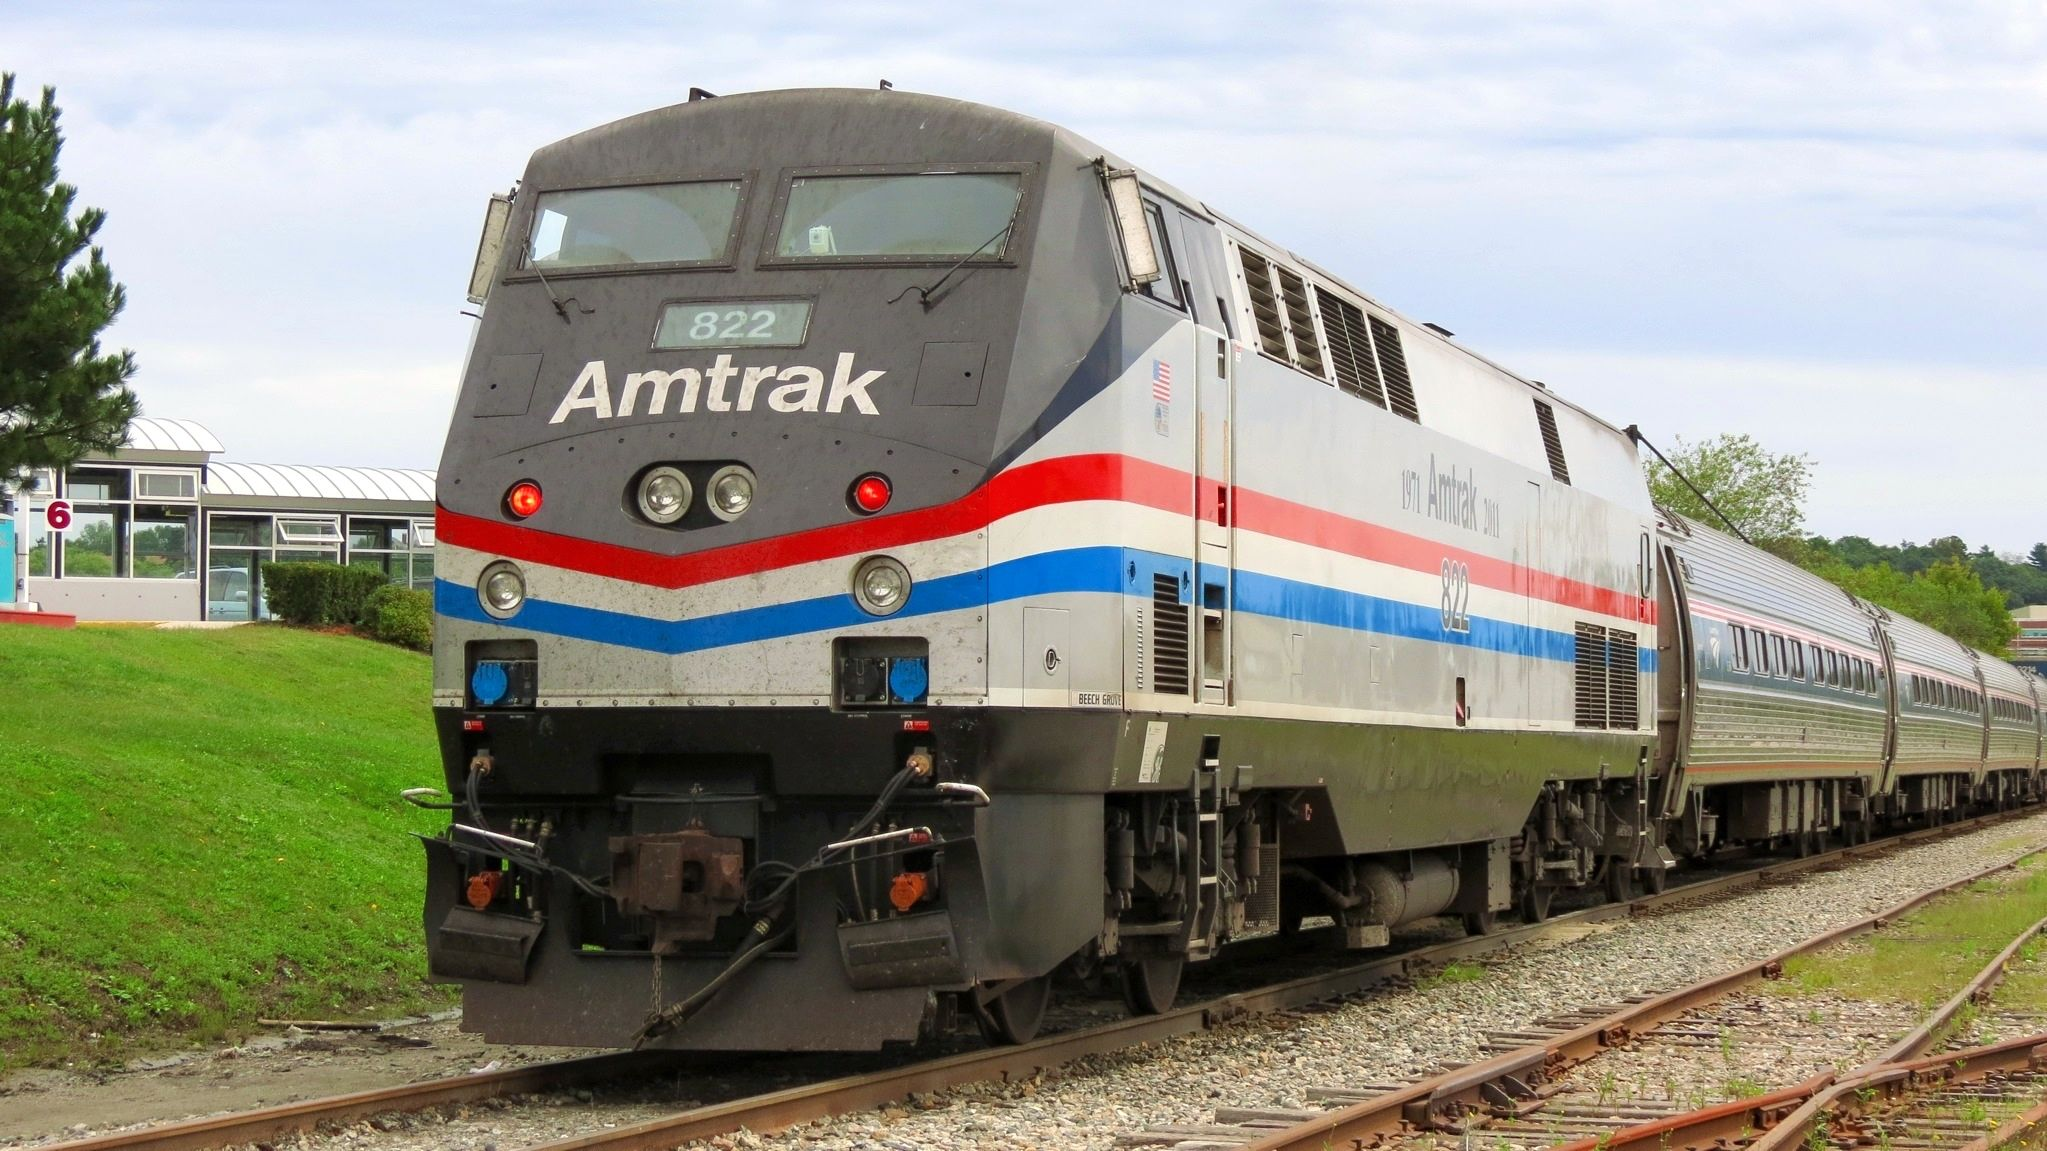 11 Fast Facts About Amtrak